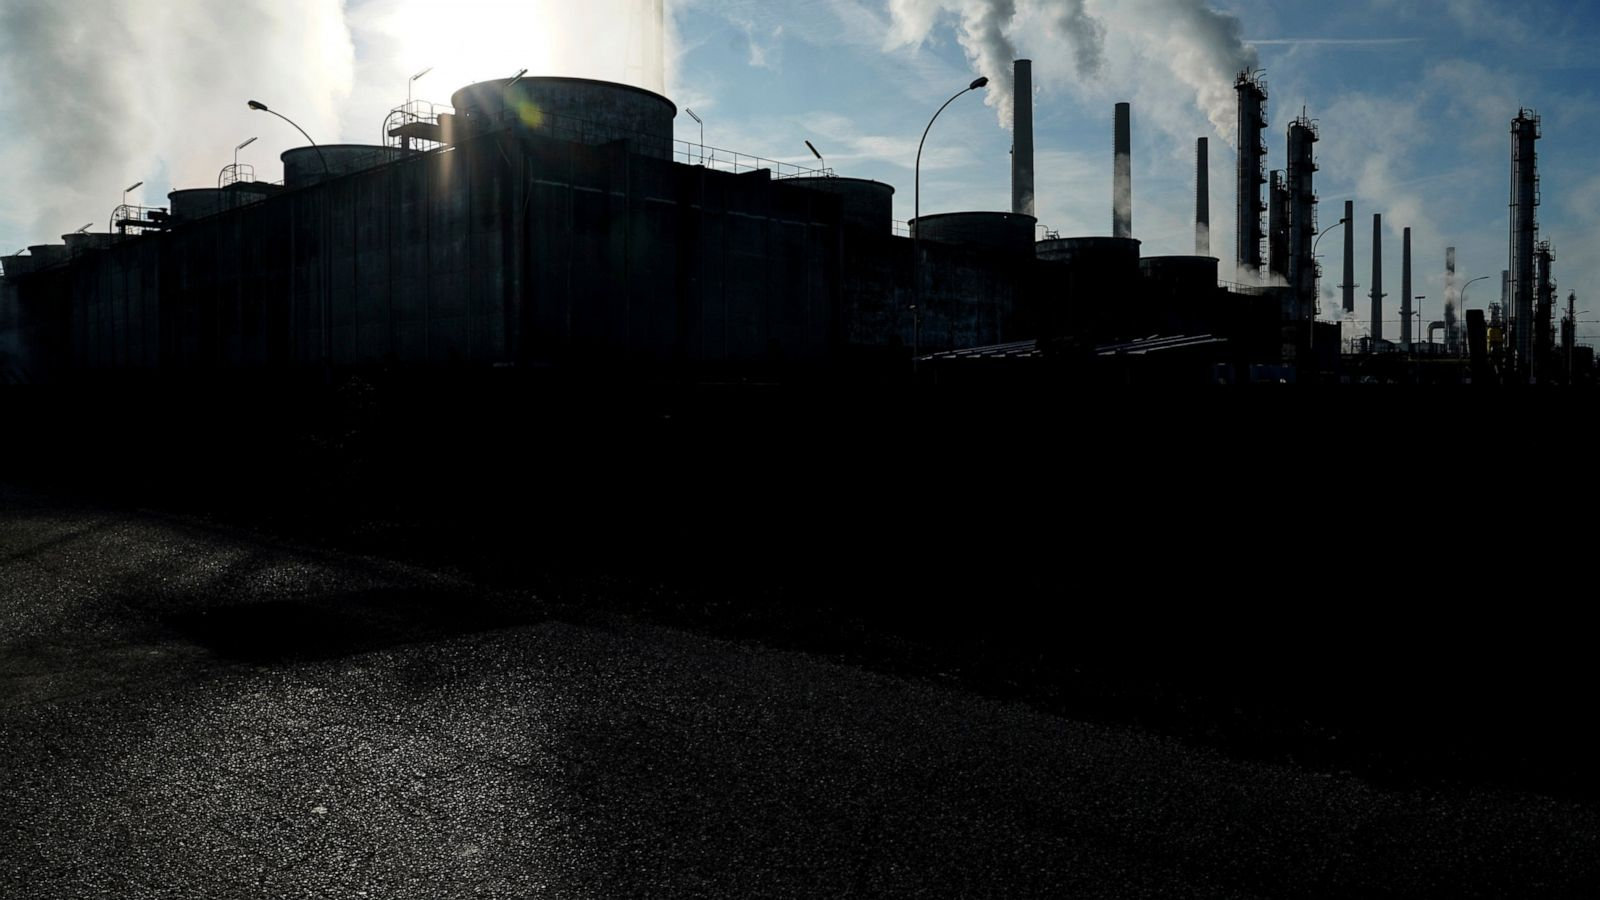 abcnews.go.com -  JAMEY KEATEN Associated Press - UN: Greenhouse gas concentrations hit a new record in 2020